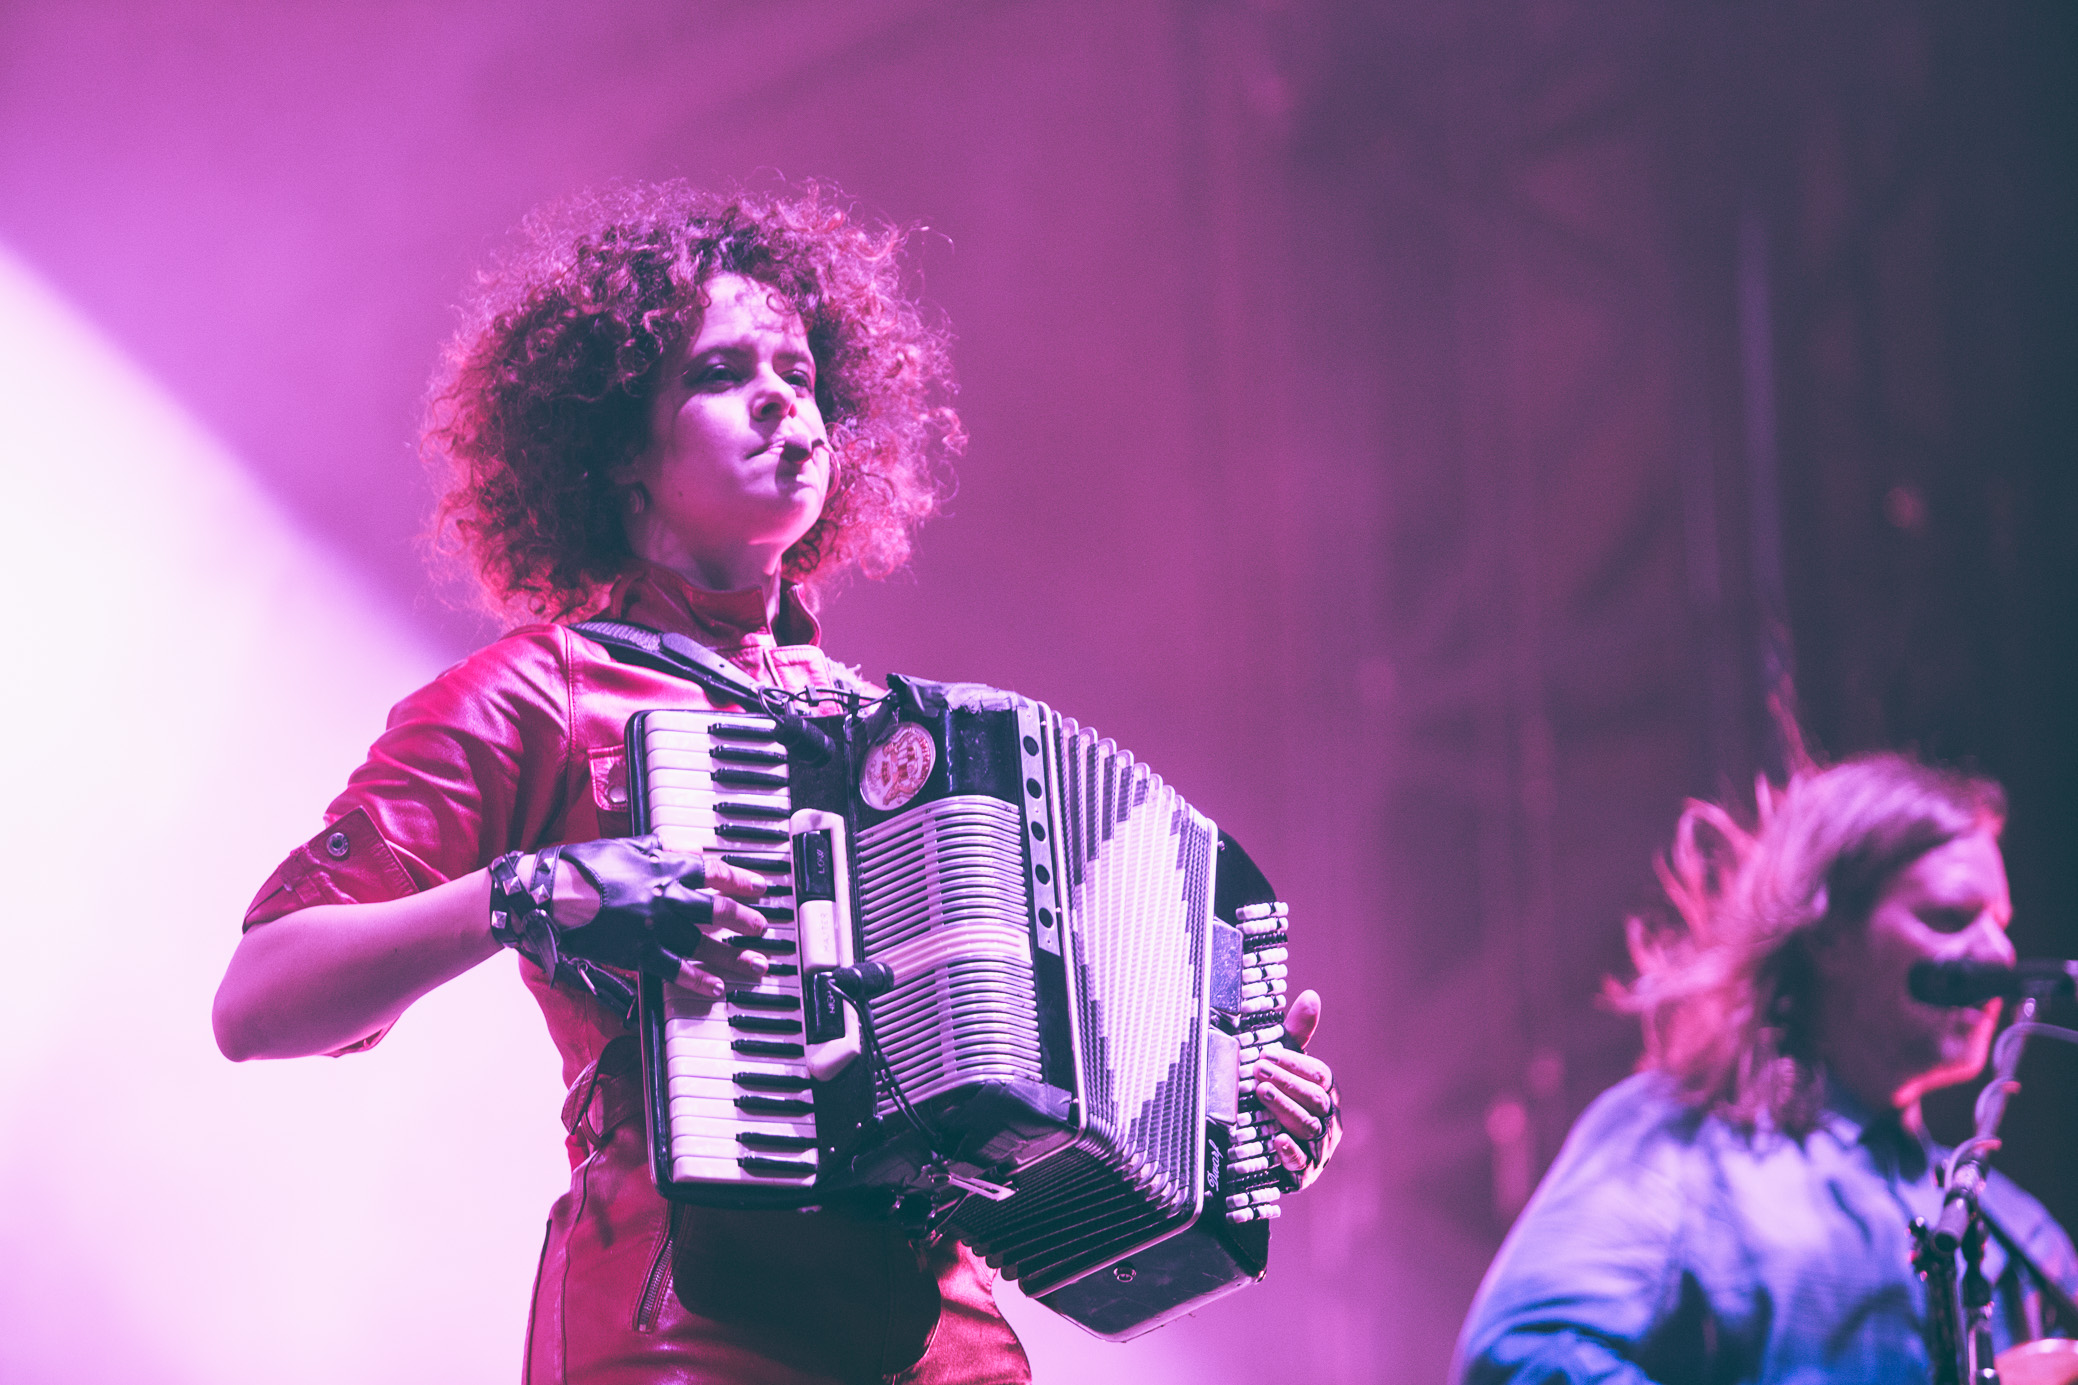 Arcade Fire performs in concert at the Sloss Music and Arts Festival in Birmingham, Alabama on July 14th, 2018. (Photo by David A. Smith/DSmithScenes)